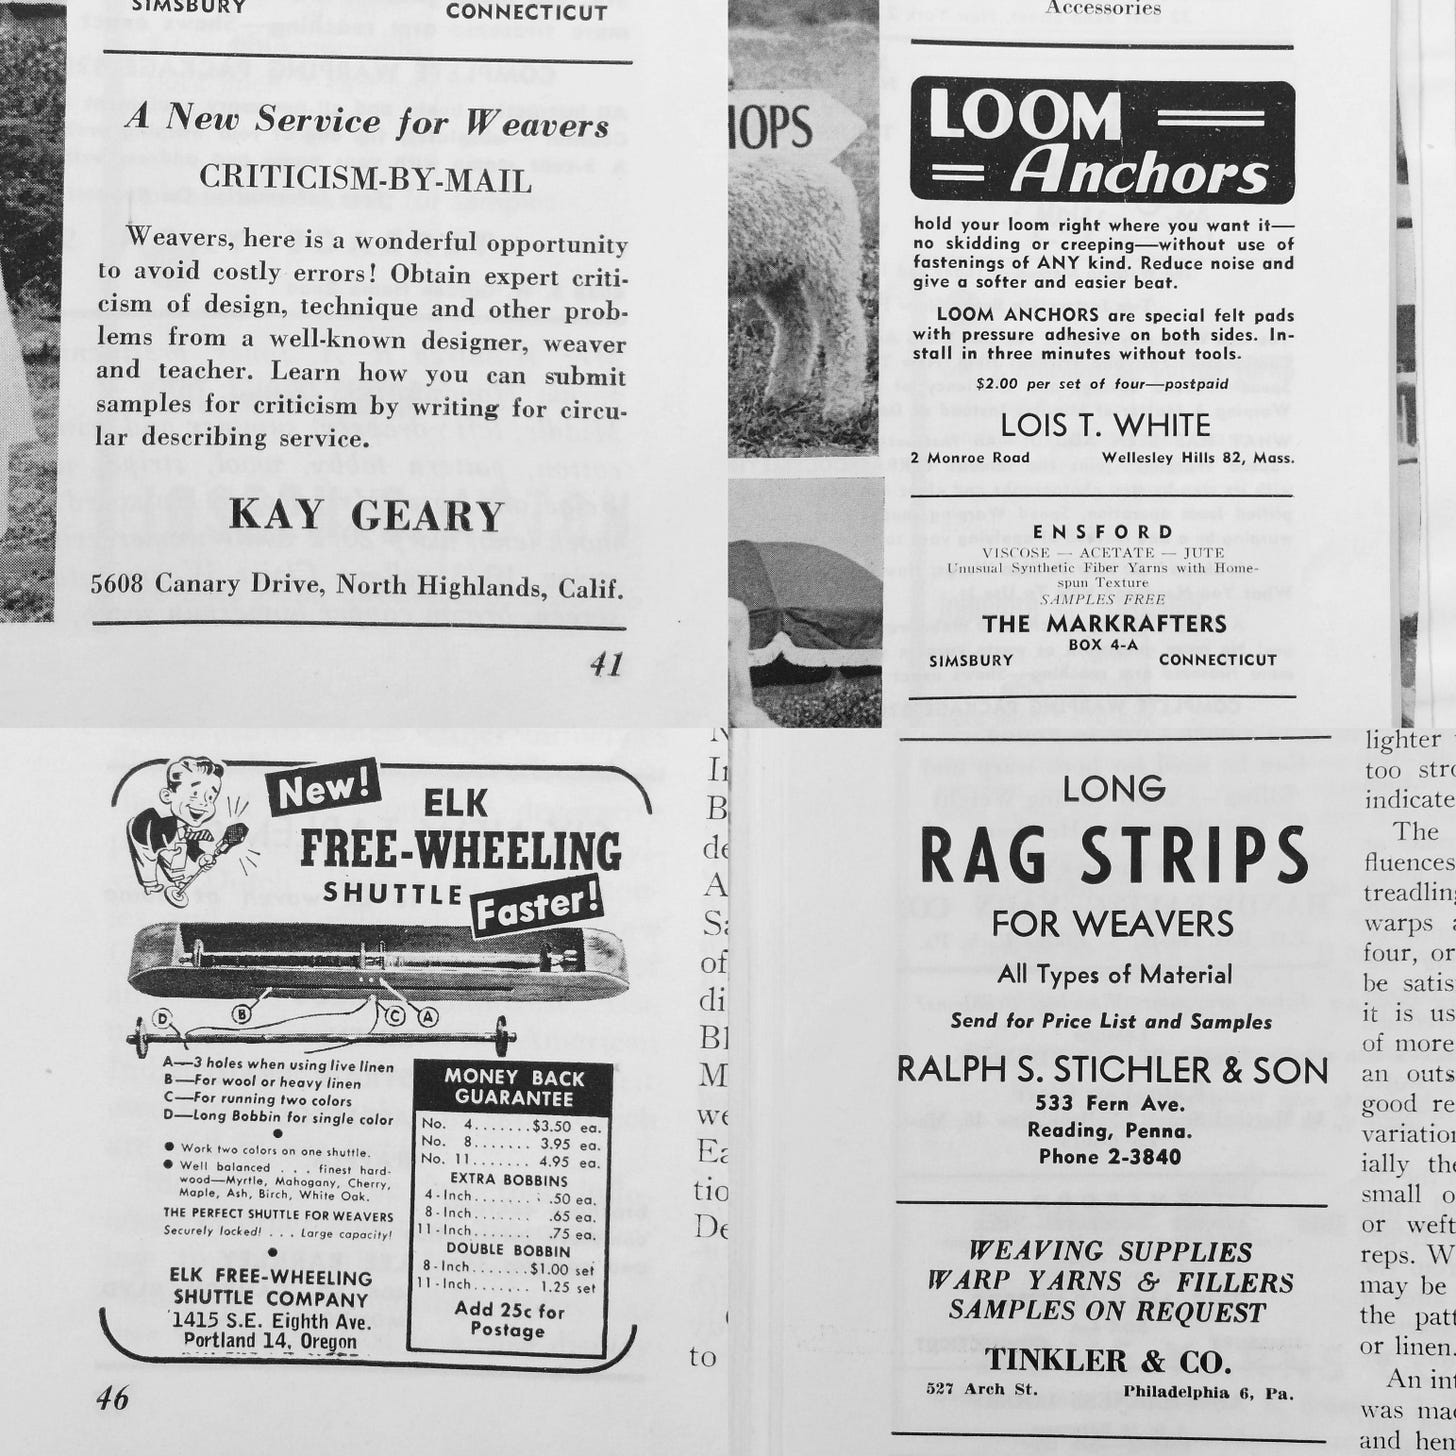 Collage of old magazine advertisements